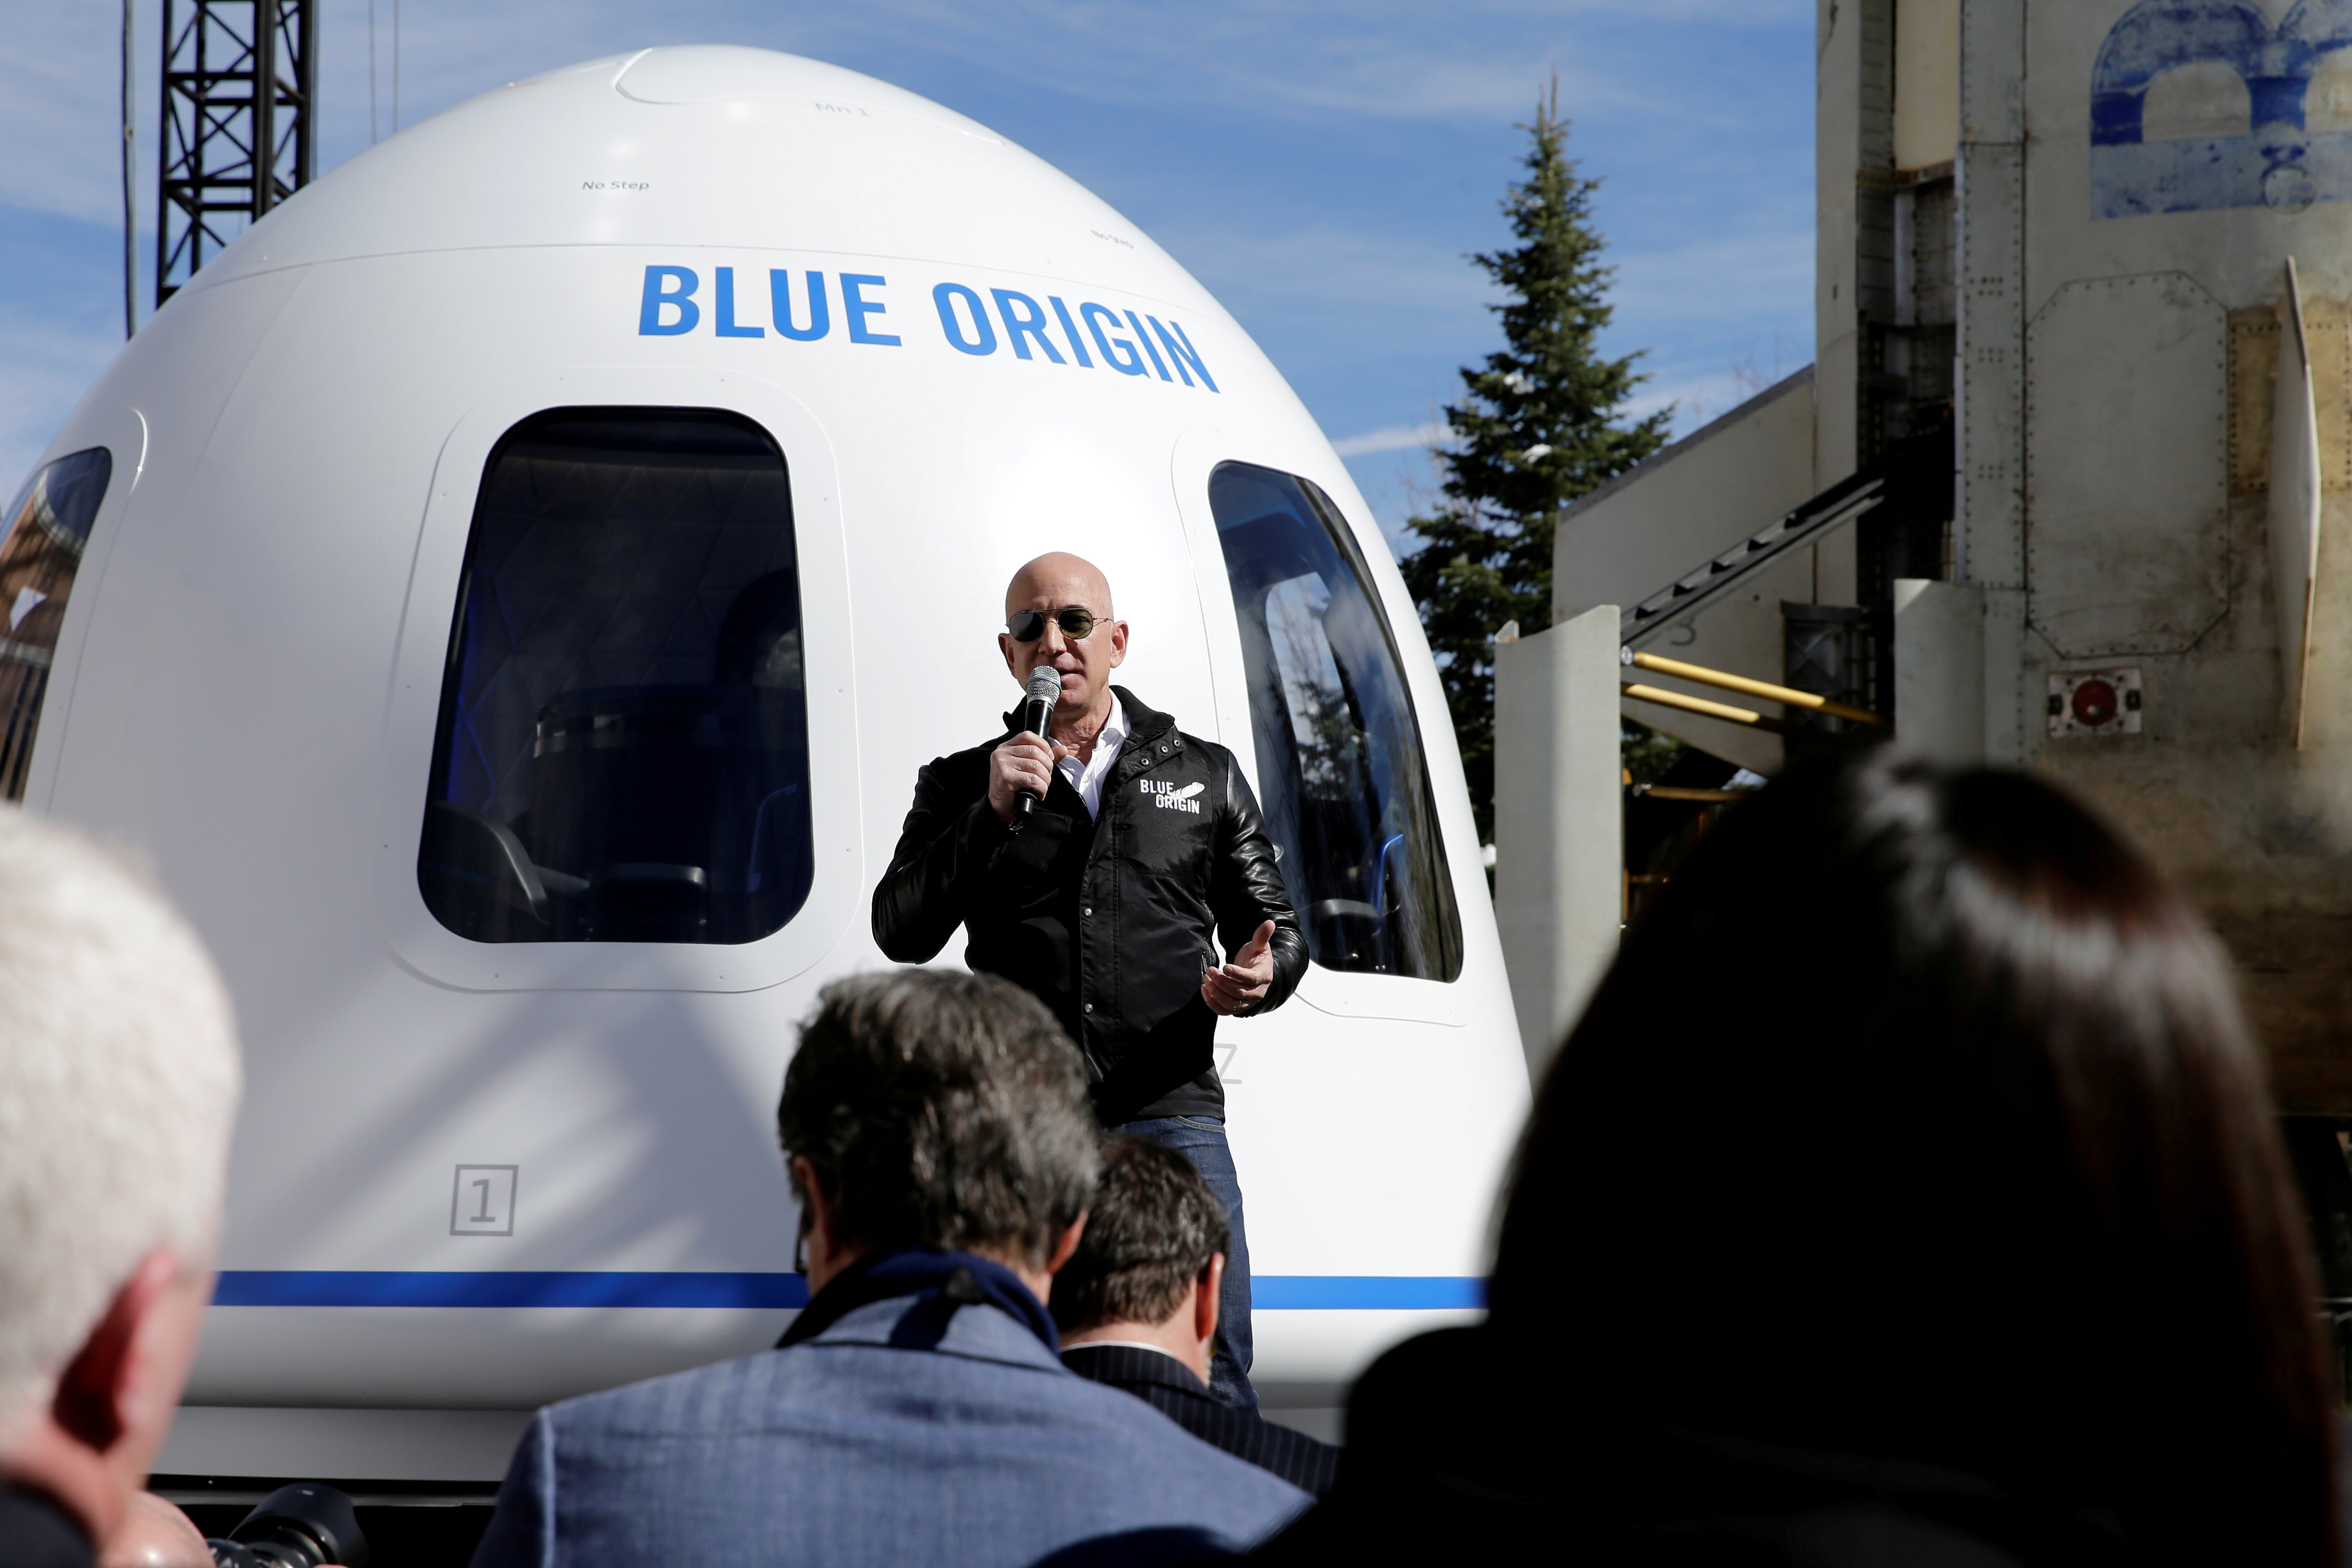 Amazon and Blue Origin founder Jeff Bezos addresses the media about the New Shepard rocket booster and Crew Capsule mockup at the 33rd Space Symposium in Colorado Springs, Colorado, United States April 5, 2017. REUTERS/Isaiah J. Downing/File Photo